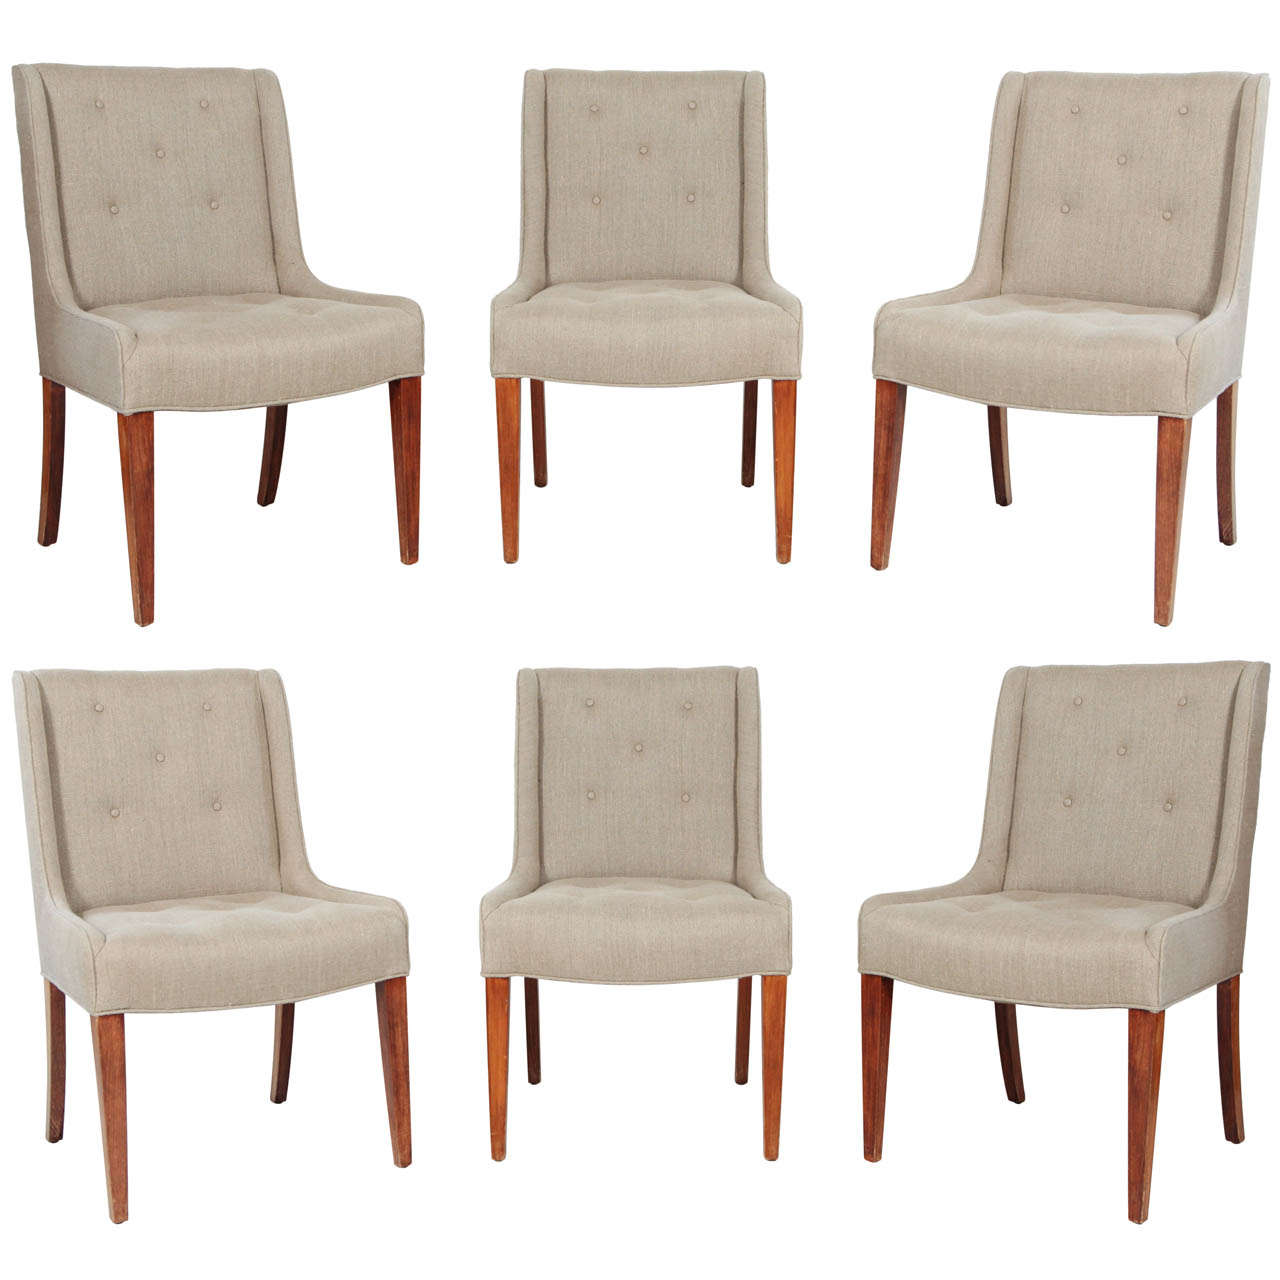 tufted dining room chairs santa hat chair covers diy set of six in hemp linen at 1stdibs